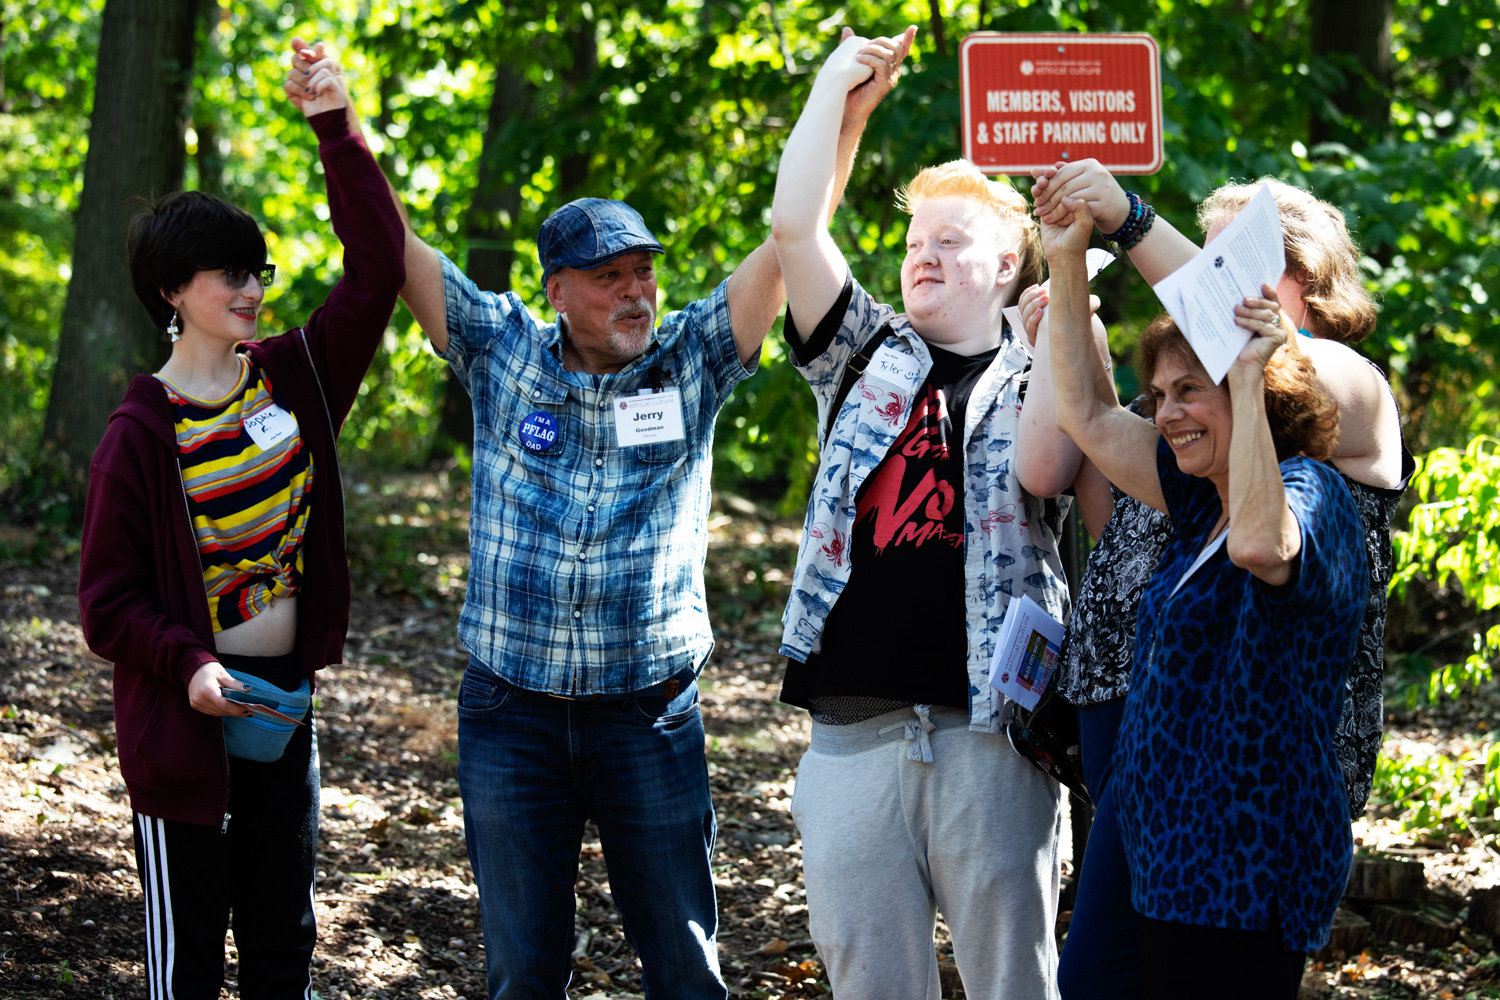 Jerry Goodman, second from left, cheers with attendees of a flag unveiling ceremony for the organizations PFLAG and Black Lives Matter at the Riverdale-Yonkers Society for Ethical Culture last year. The society has moved to take its services and activities online in response to the coronavirus pandemic.